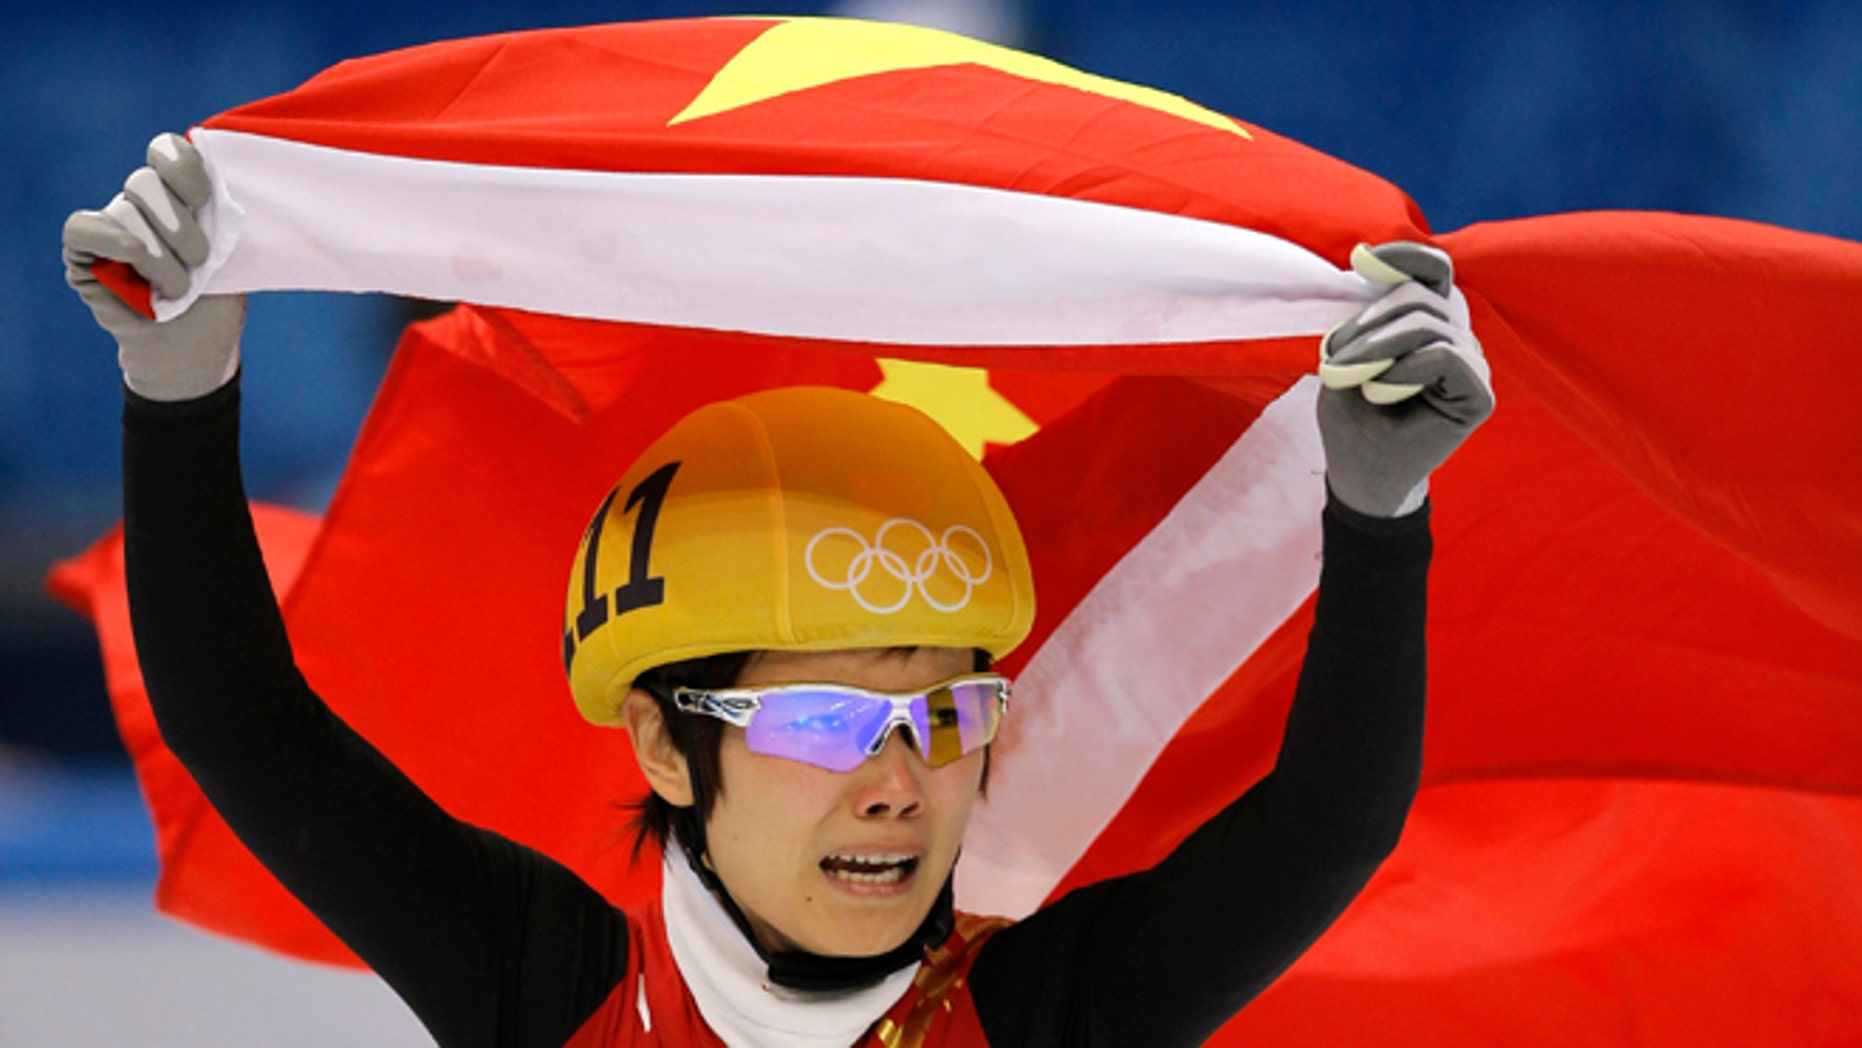 Feb. 13, 2014: Li Jianrou of China celebrates winning the women's 500m short track speedskating final at the Iceberg Skating Palace during the 2014 Winter Olympics in Sochi, Russia.